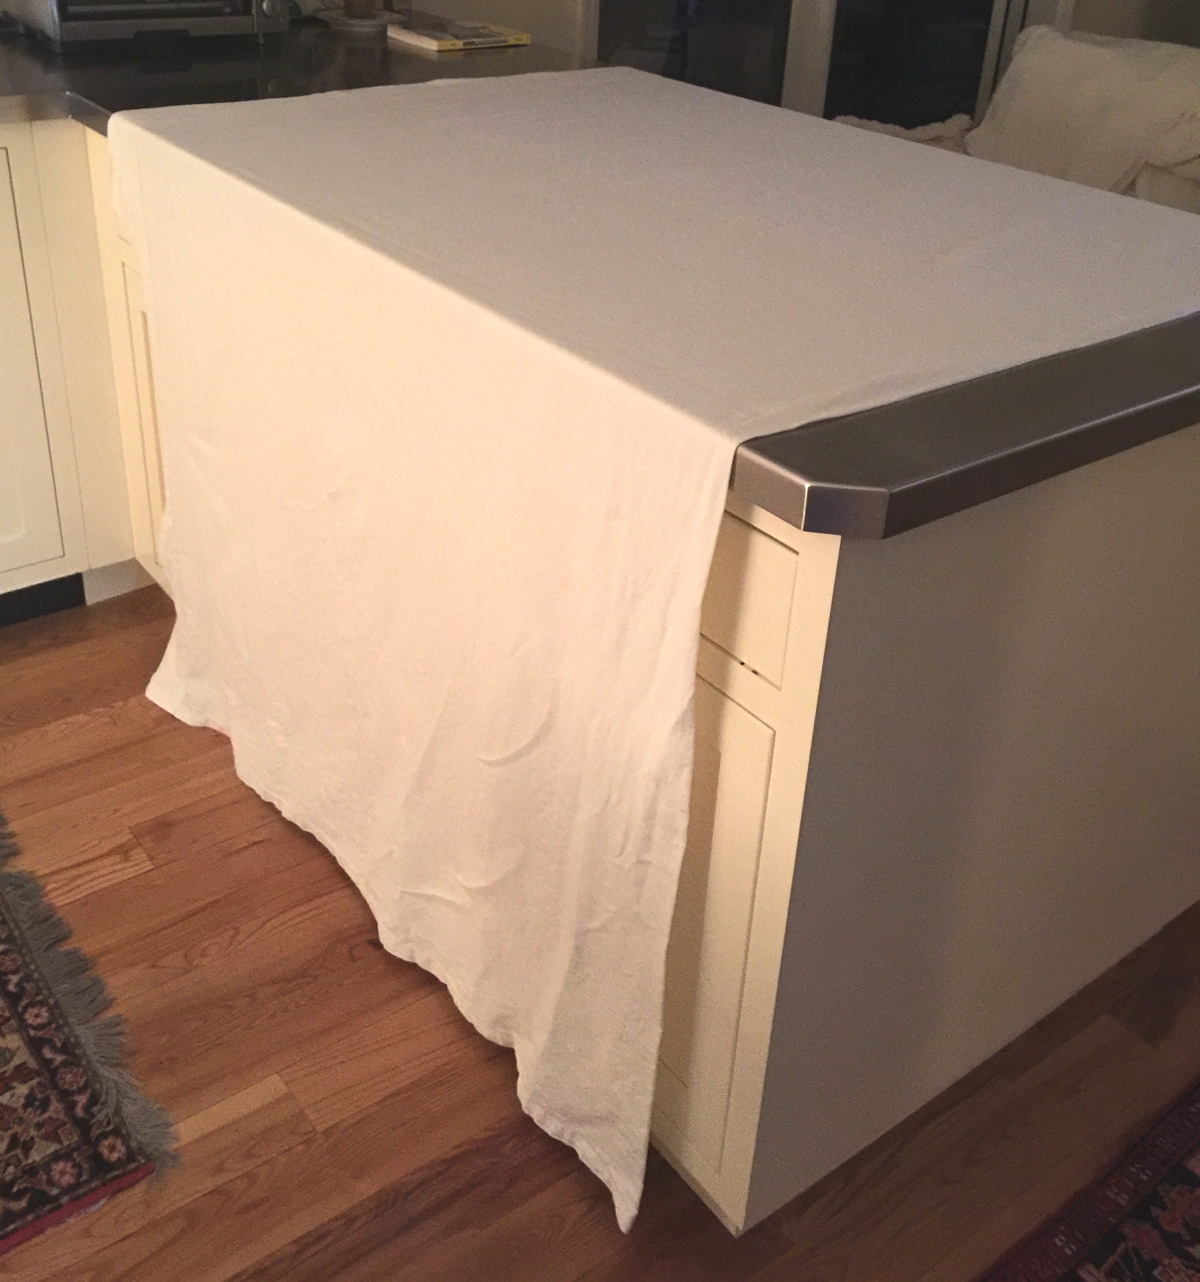 linen bed sheets - air drying a king size linen bed sheet over the kitchen counter - Atticmag